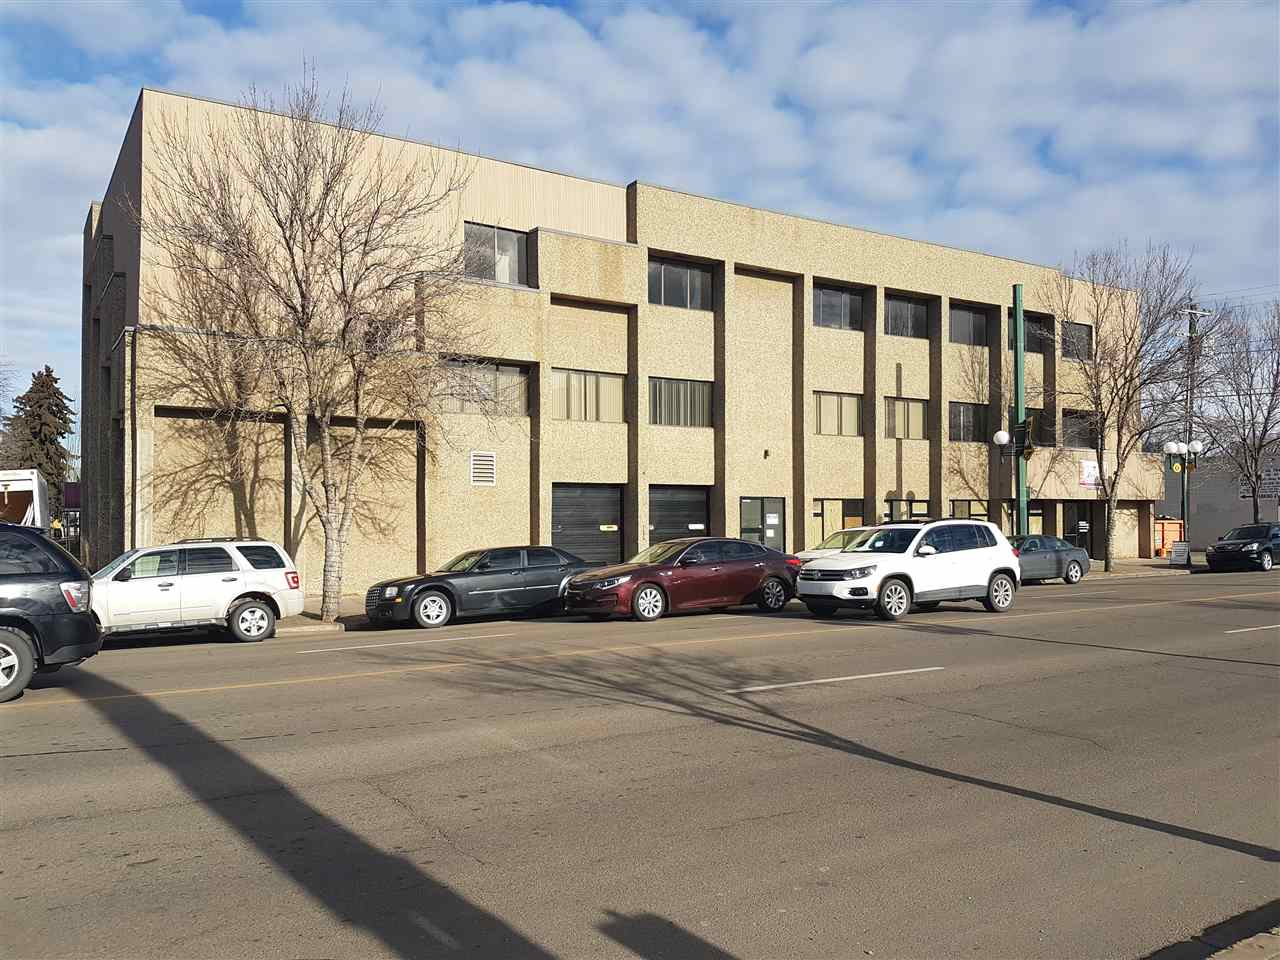 Over 15000 sq. ft. of retail and office space in this 3 storey, stand alone commercial building strategically situated in north central Edmonton near LRT line. Main floor has a street front retail bay with overhead doors for large vehicle parking/unloading. Three levels - all with office space.   Main floor can be office and/or retail.  This price includes a large parking lot on the side of the building. Main floor is concrete block and 2n3 and 3rd floors are post and beam construction.